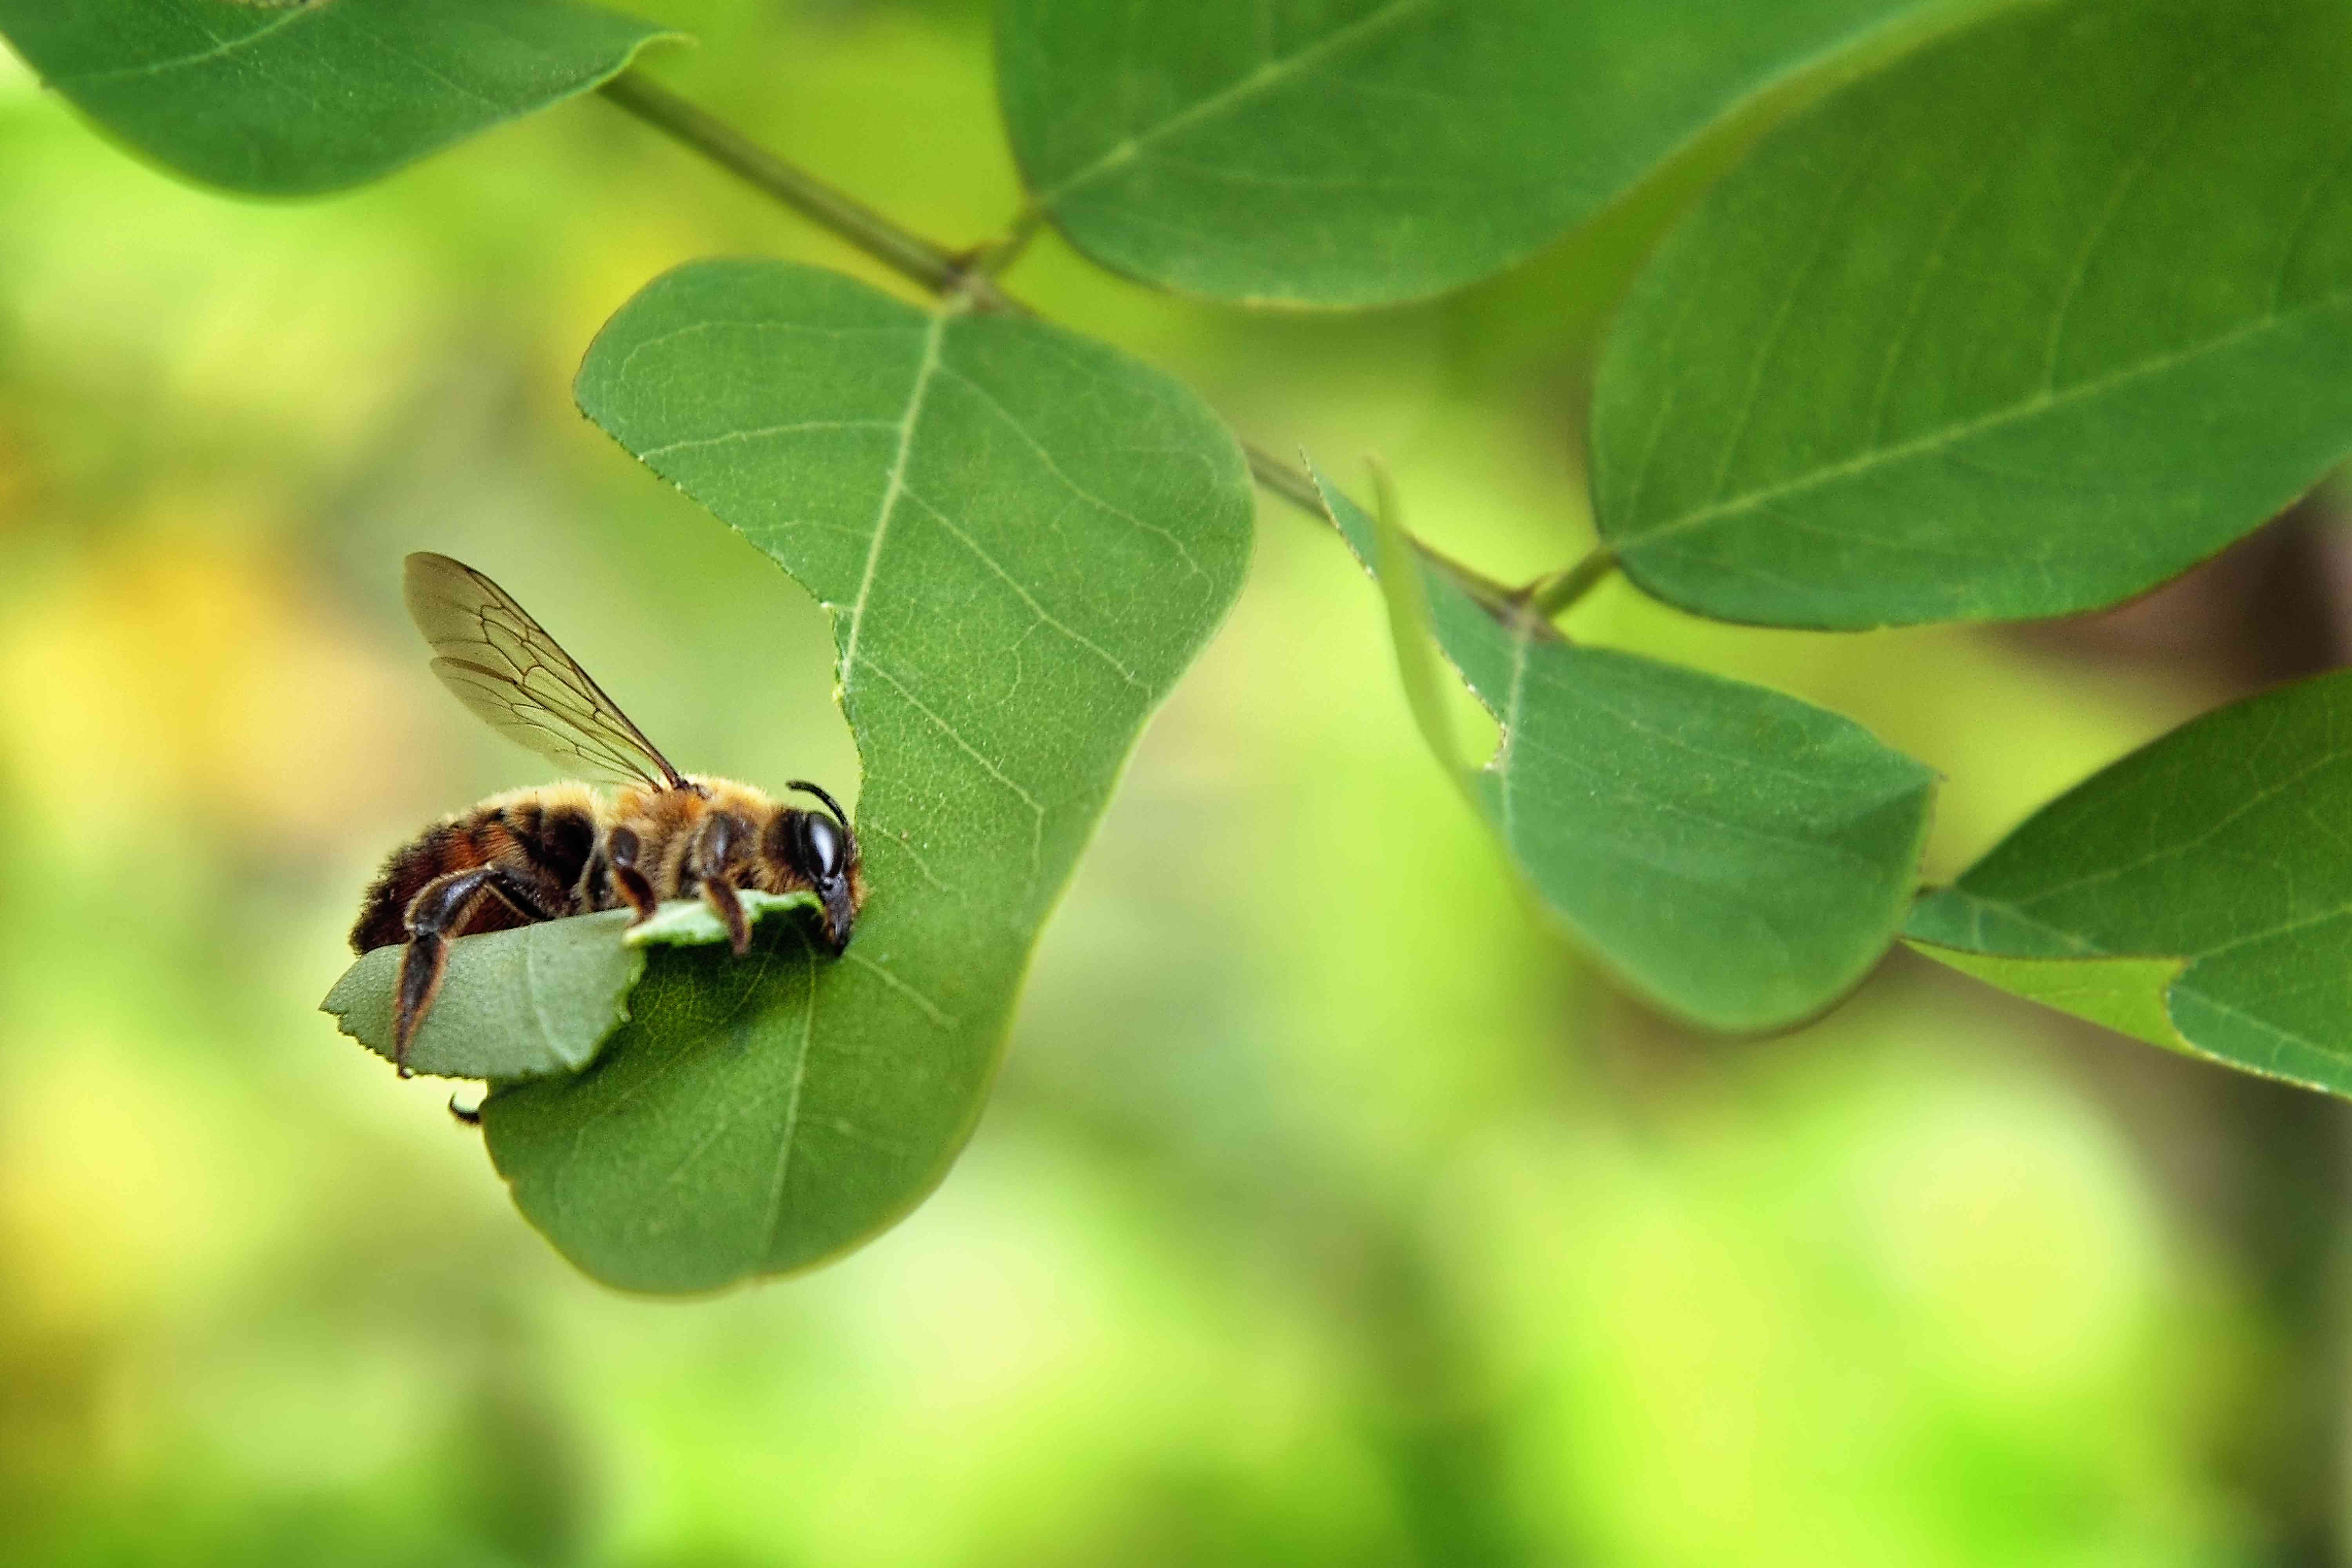 Leafcutter bee chewing on a leaf